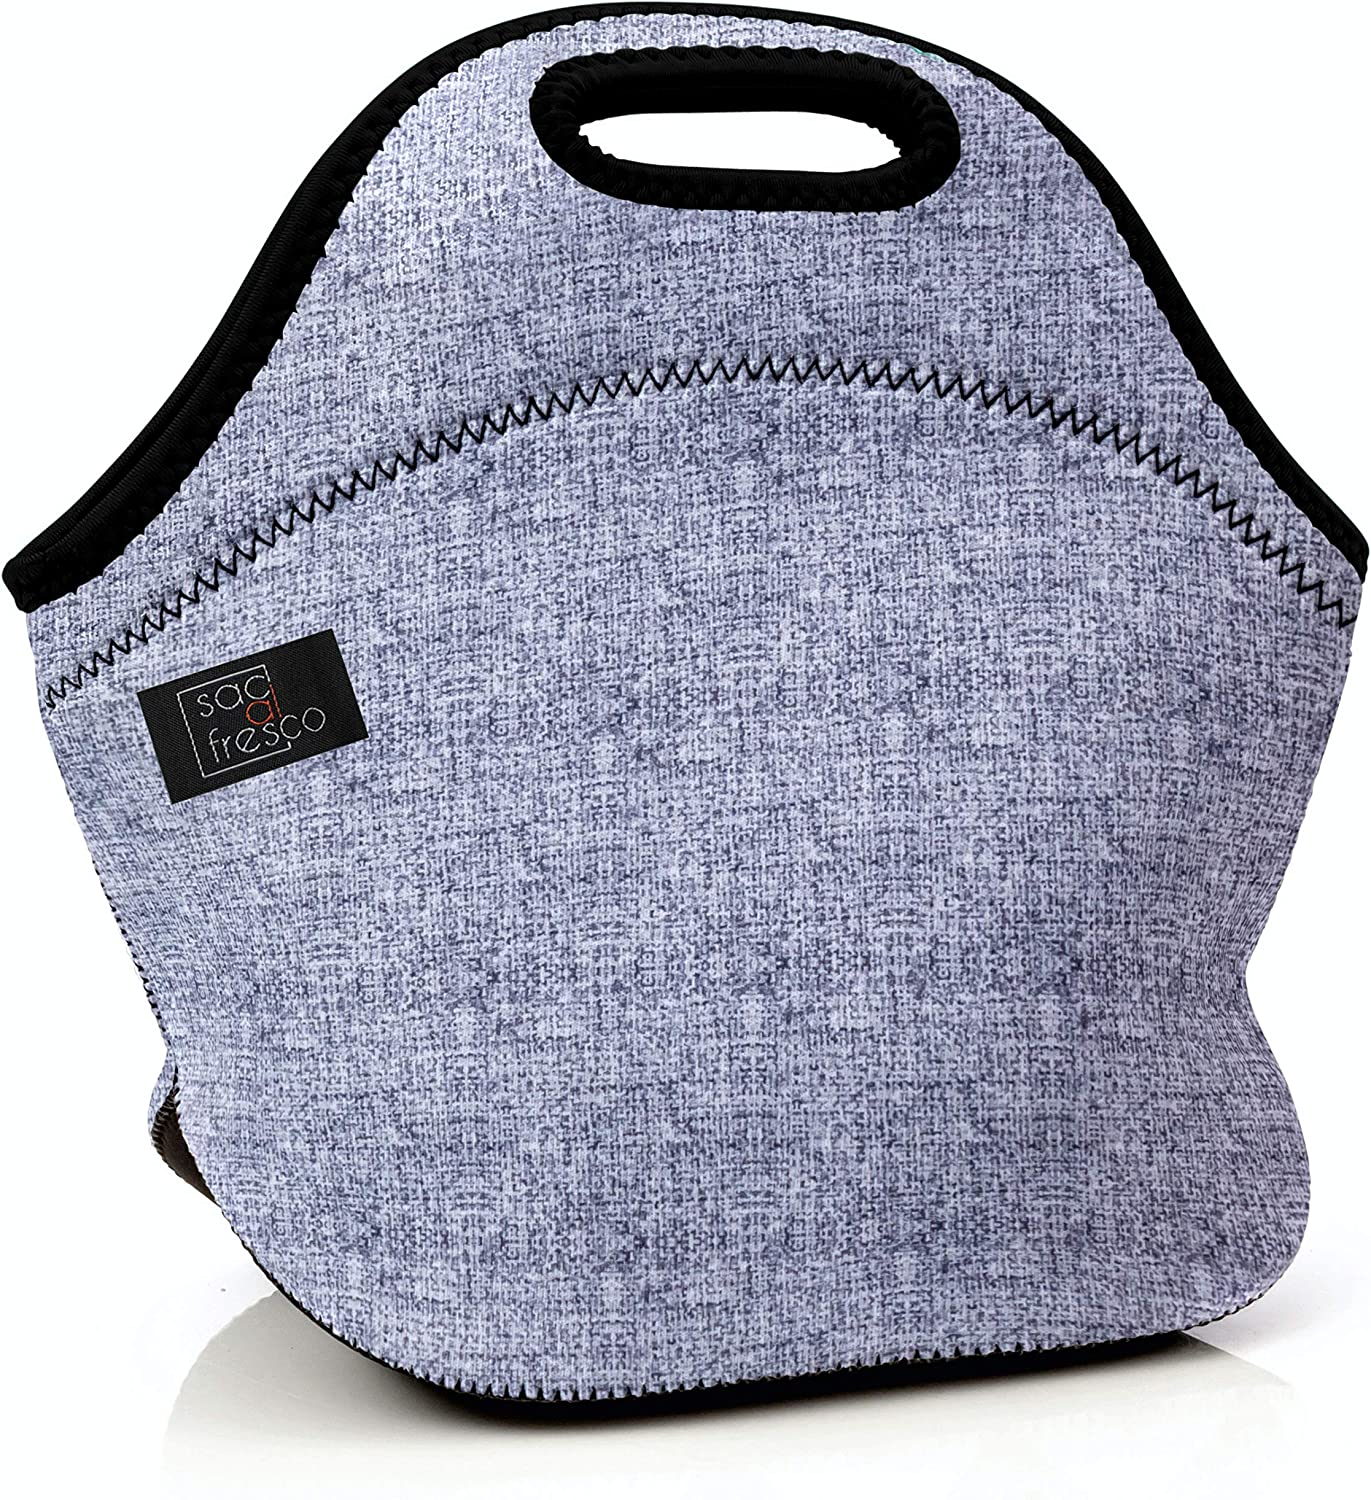 Sac al Fresco Deluxe Neoprene Insulated Lunch Bag Extra Thick Insulated Lunch Box With Heavy Duty Zipper Lunch Bag, Snacks, Baby Bottle Bag, Bottle Carrier Six Pack (Gray pattern)